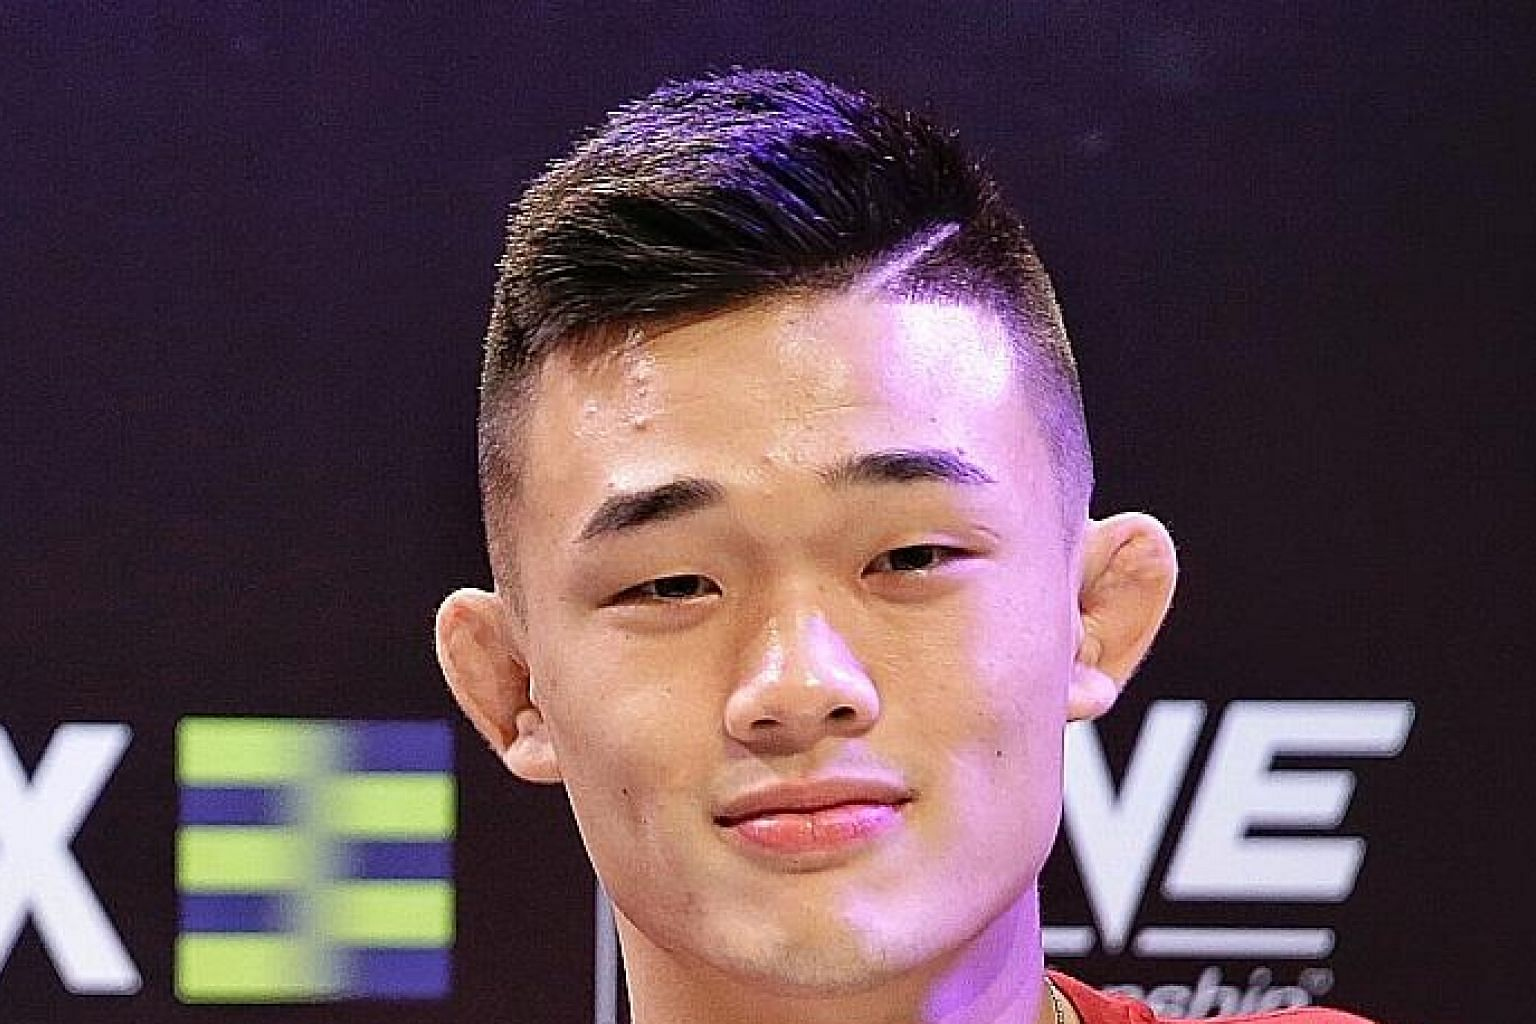 Christian Lee, 20, will challenge Shinya Aoki for his One Championship lightweight belt in Singapore on May 17.